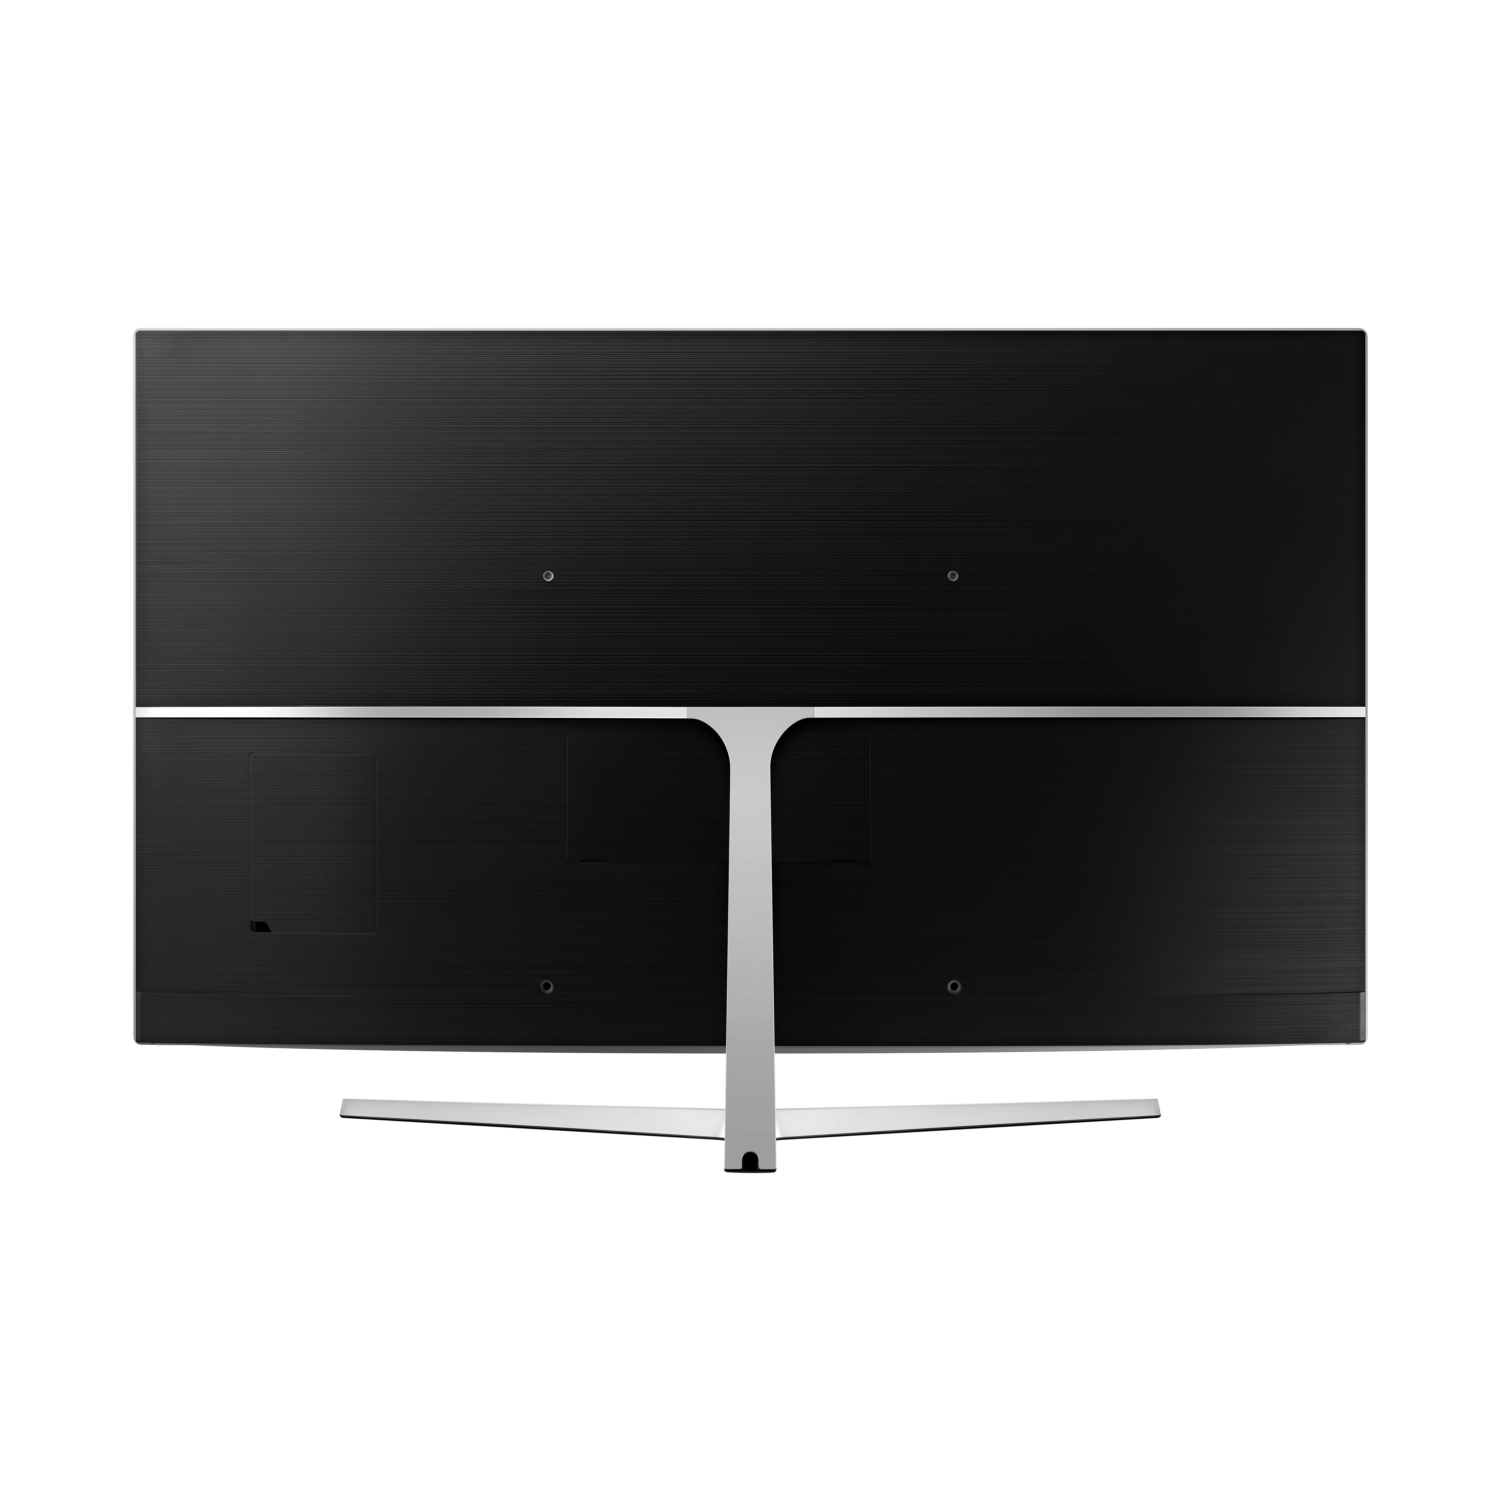 samsung ue55mu9000 premium ultra hd 55 140 cm smart led. Black Bedroom Furniture Sets. Home Design Ideas